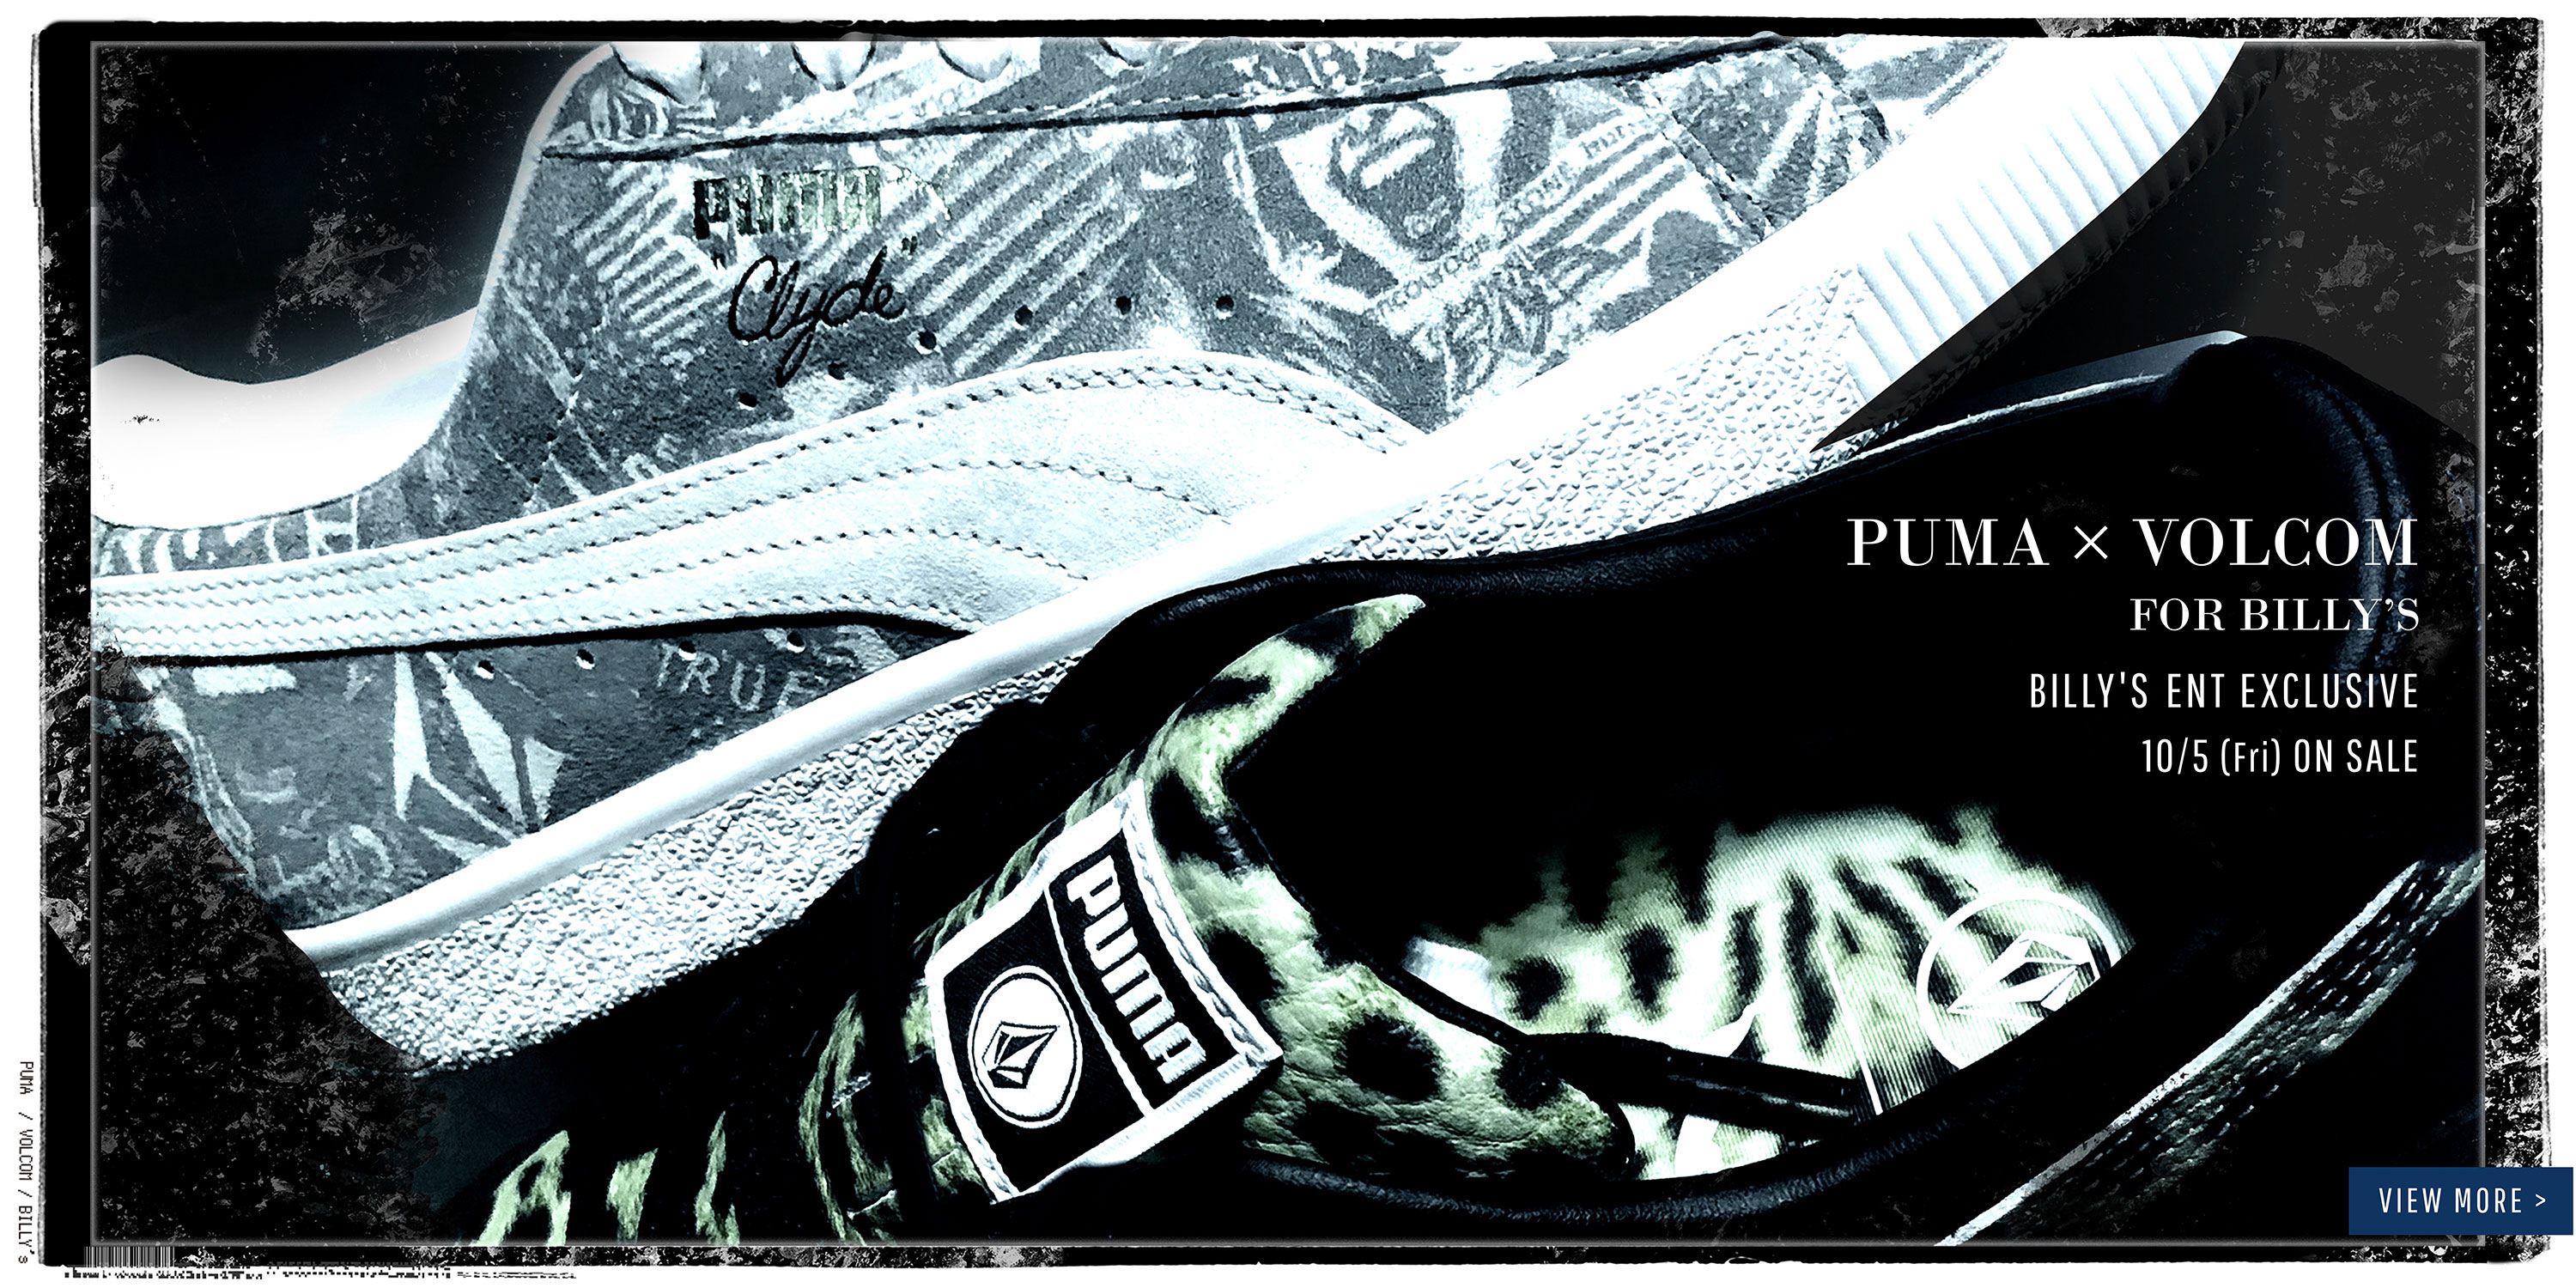 PUMA X VOLCOM FOR BILLY'S